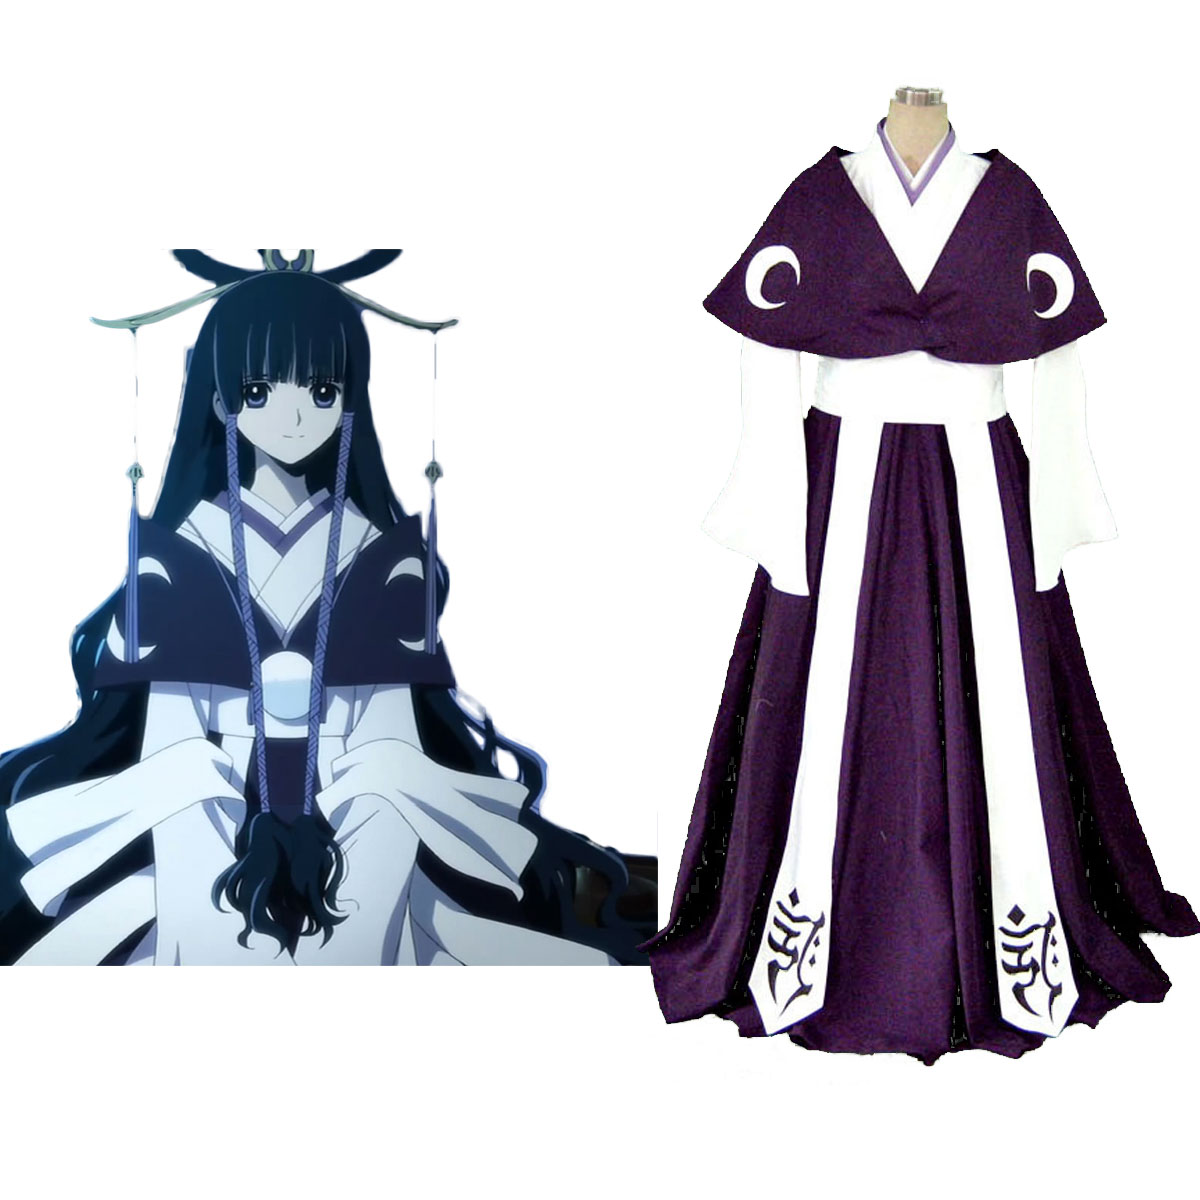 Tsubasa Reservoir Chronicle I Will Save You: Disfraces Tsubasa: Reservoir Chronicle Princess Tomoyo